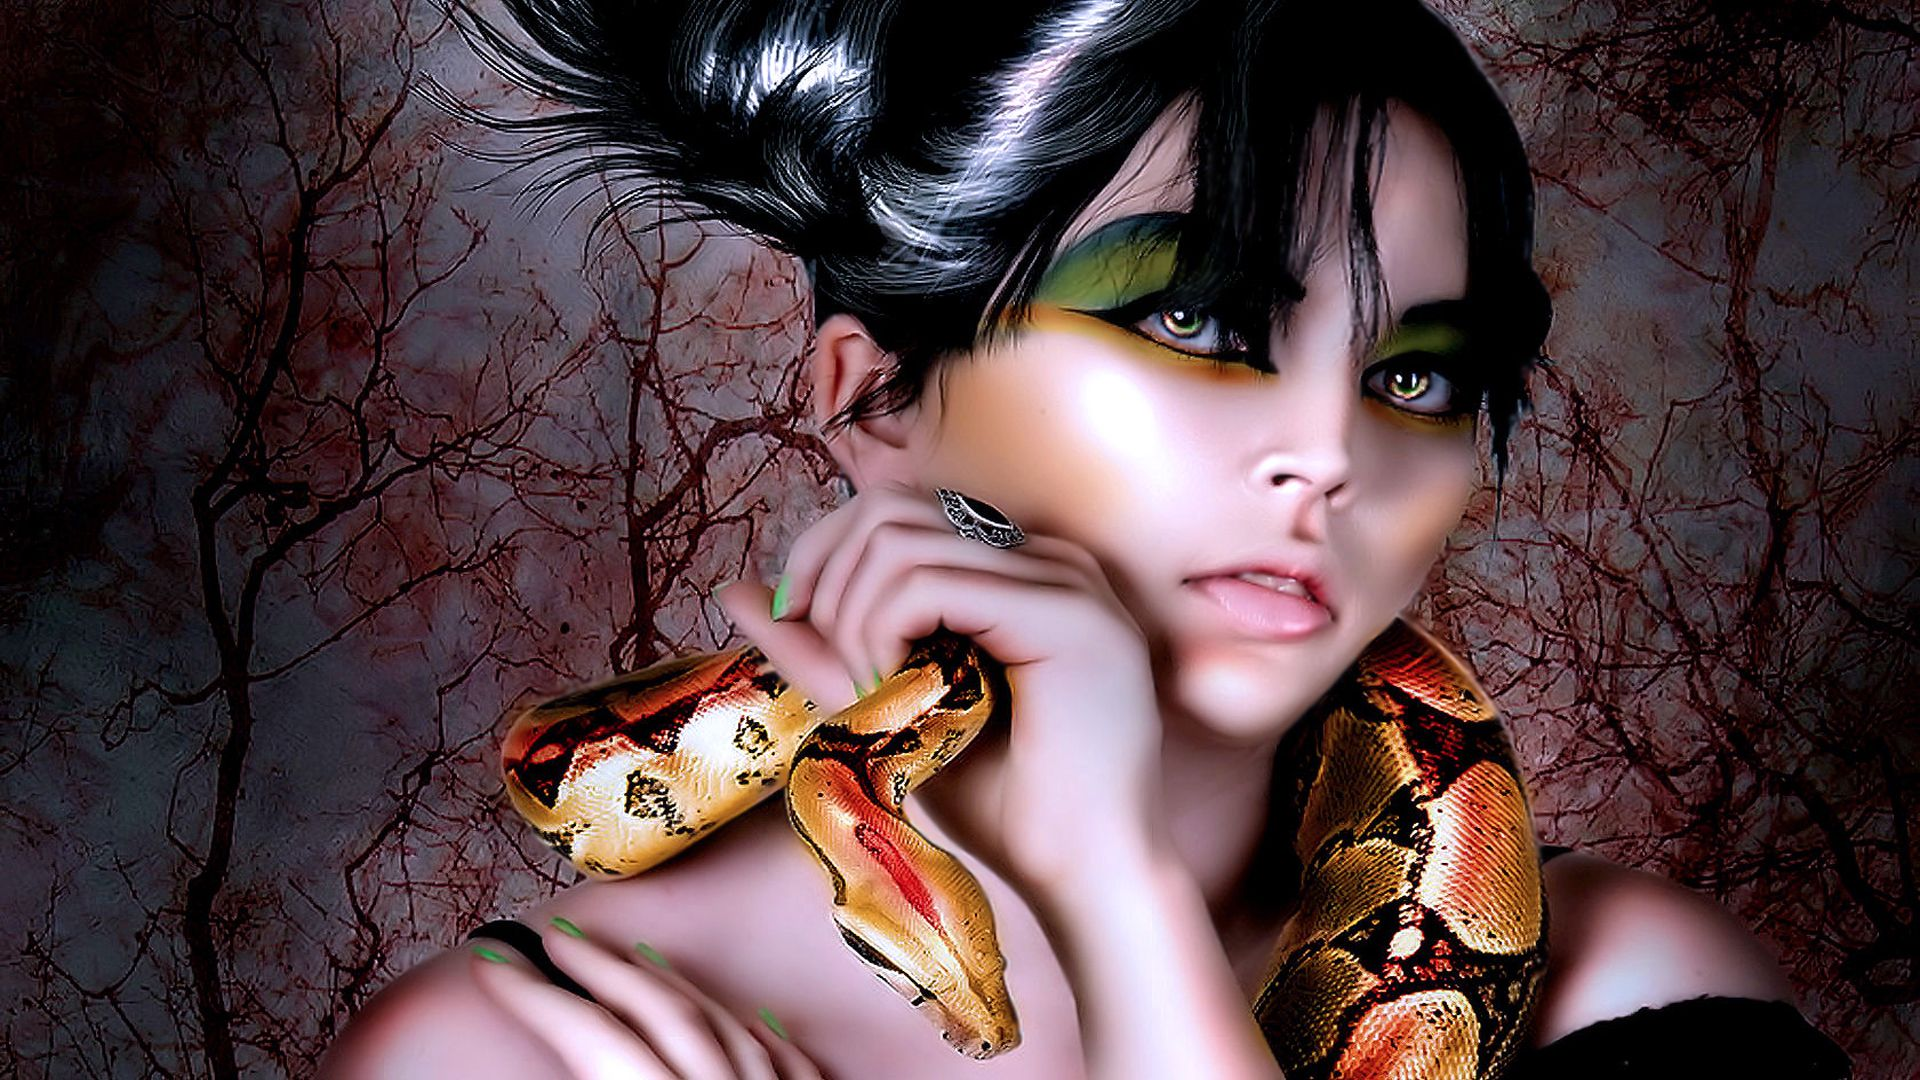 Mue fantasy women wallpaper beautiful fantasy women wallpapers girl makeup snake around his neck fantasy hd wallpapers voltagebd